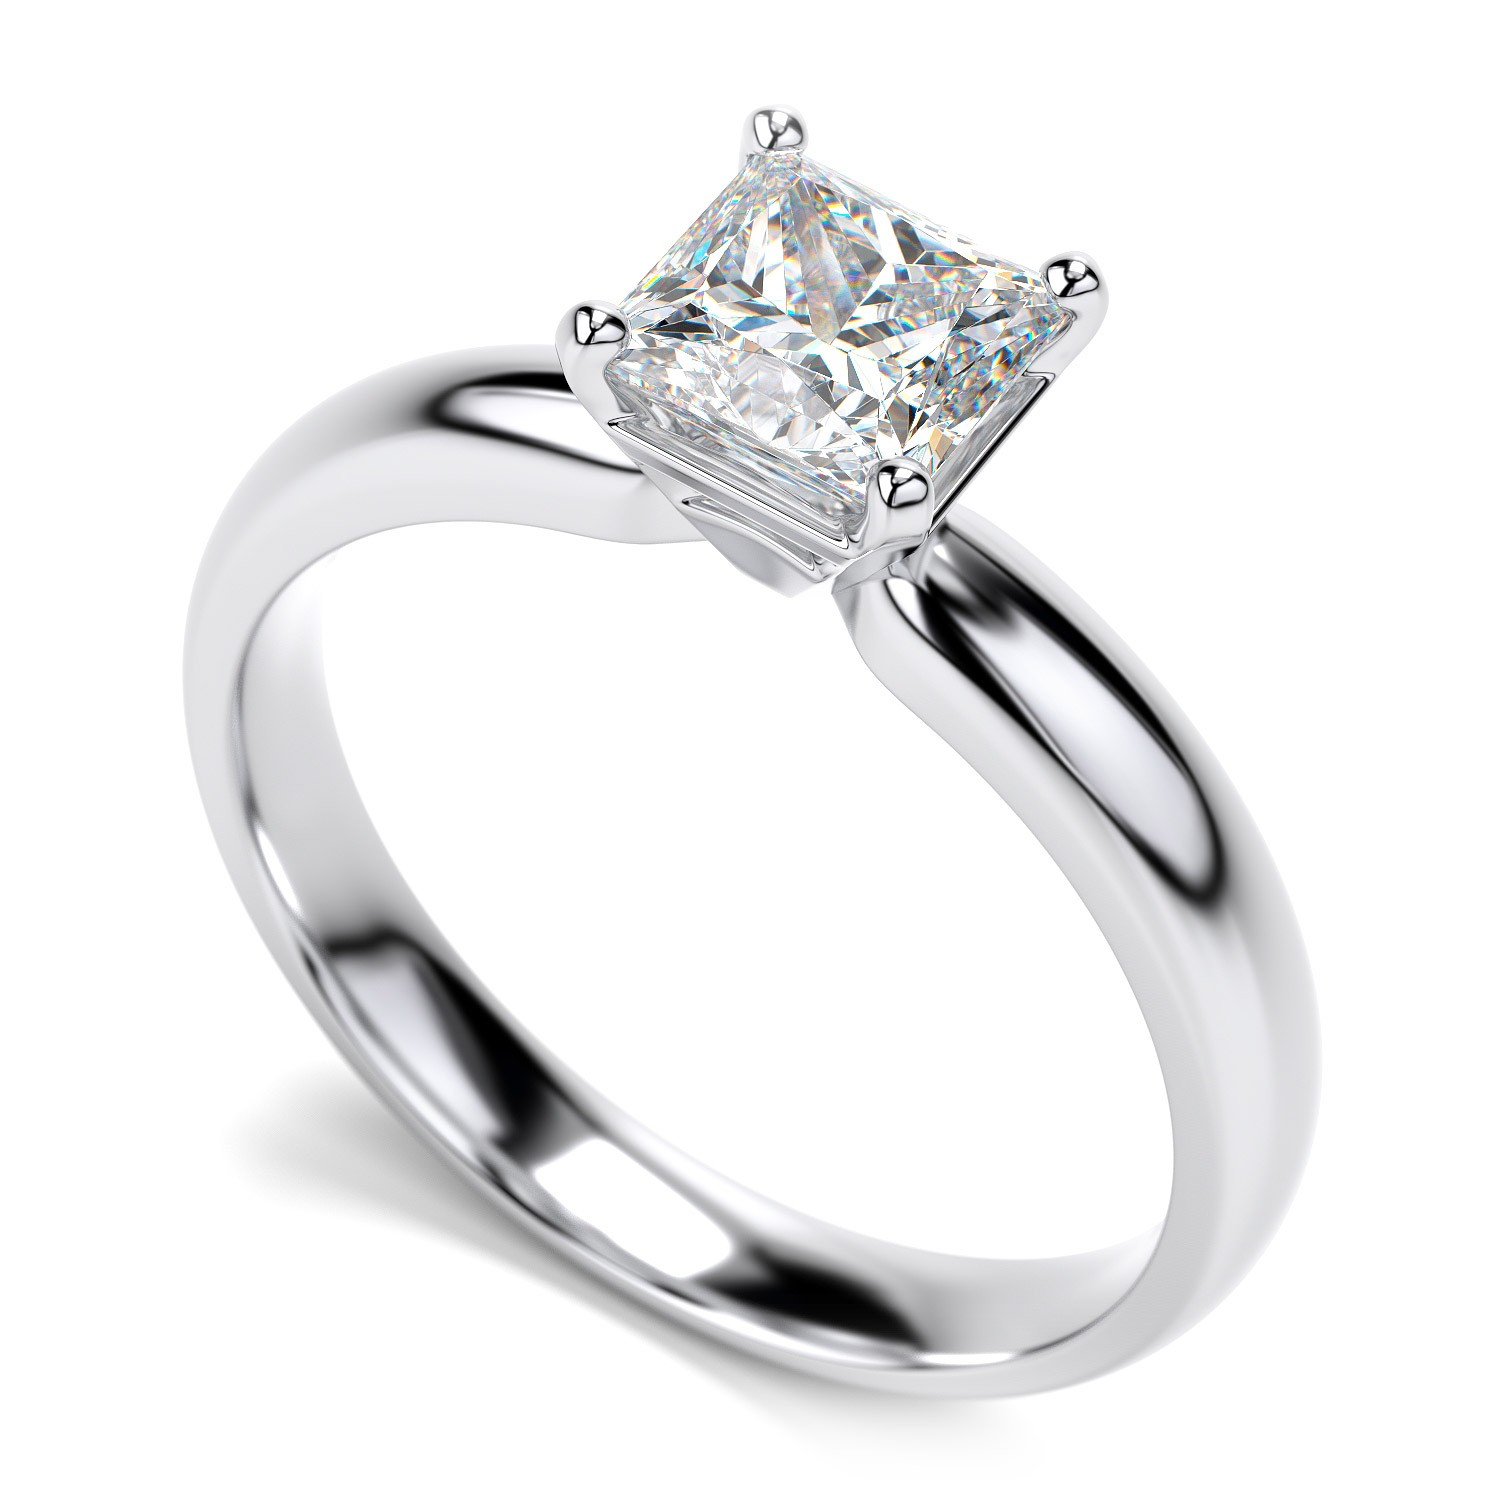 lord of the rings sirmione wedding - White Gold Princess Cut Wedding Rings